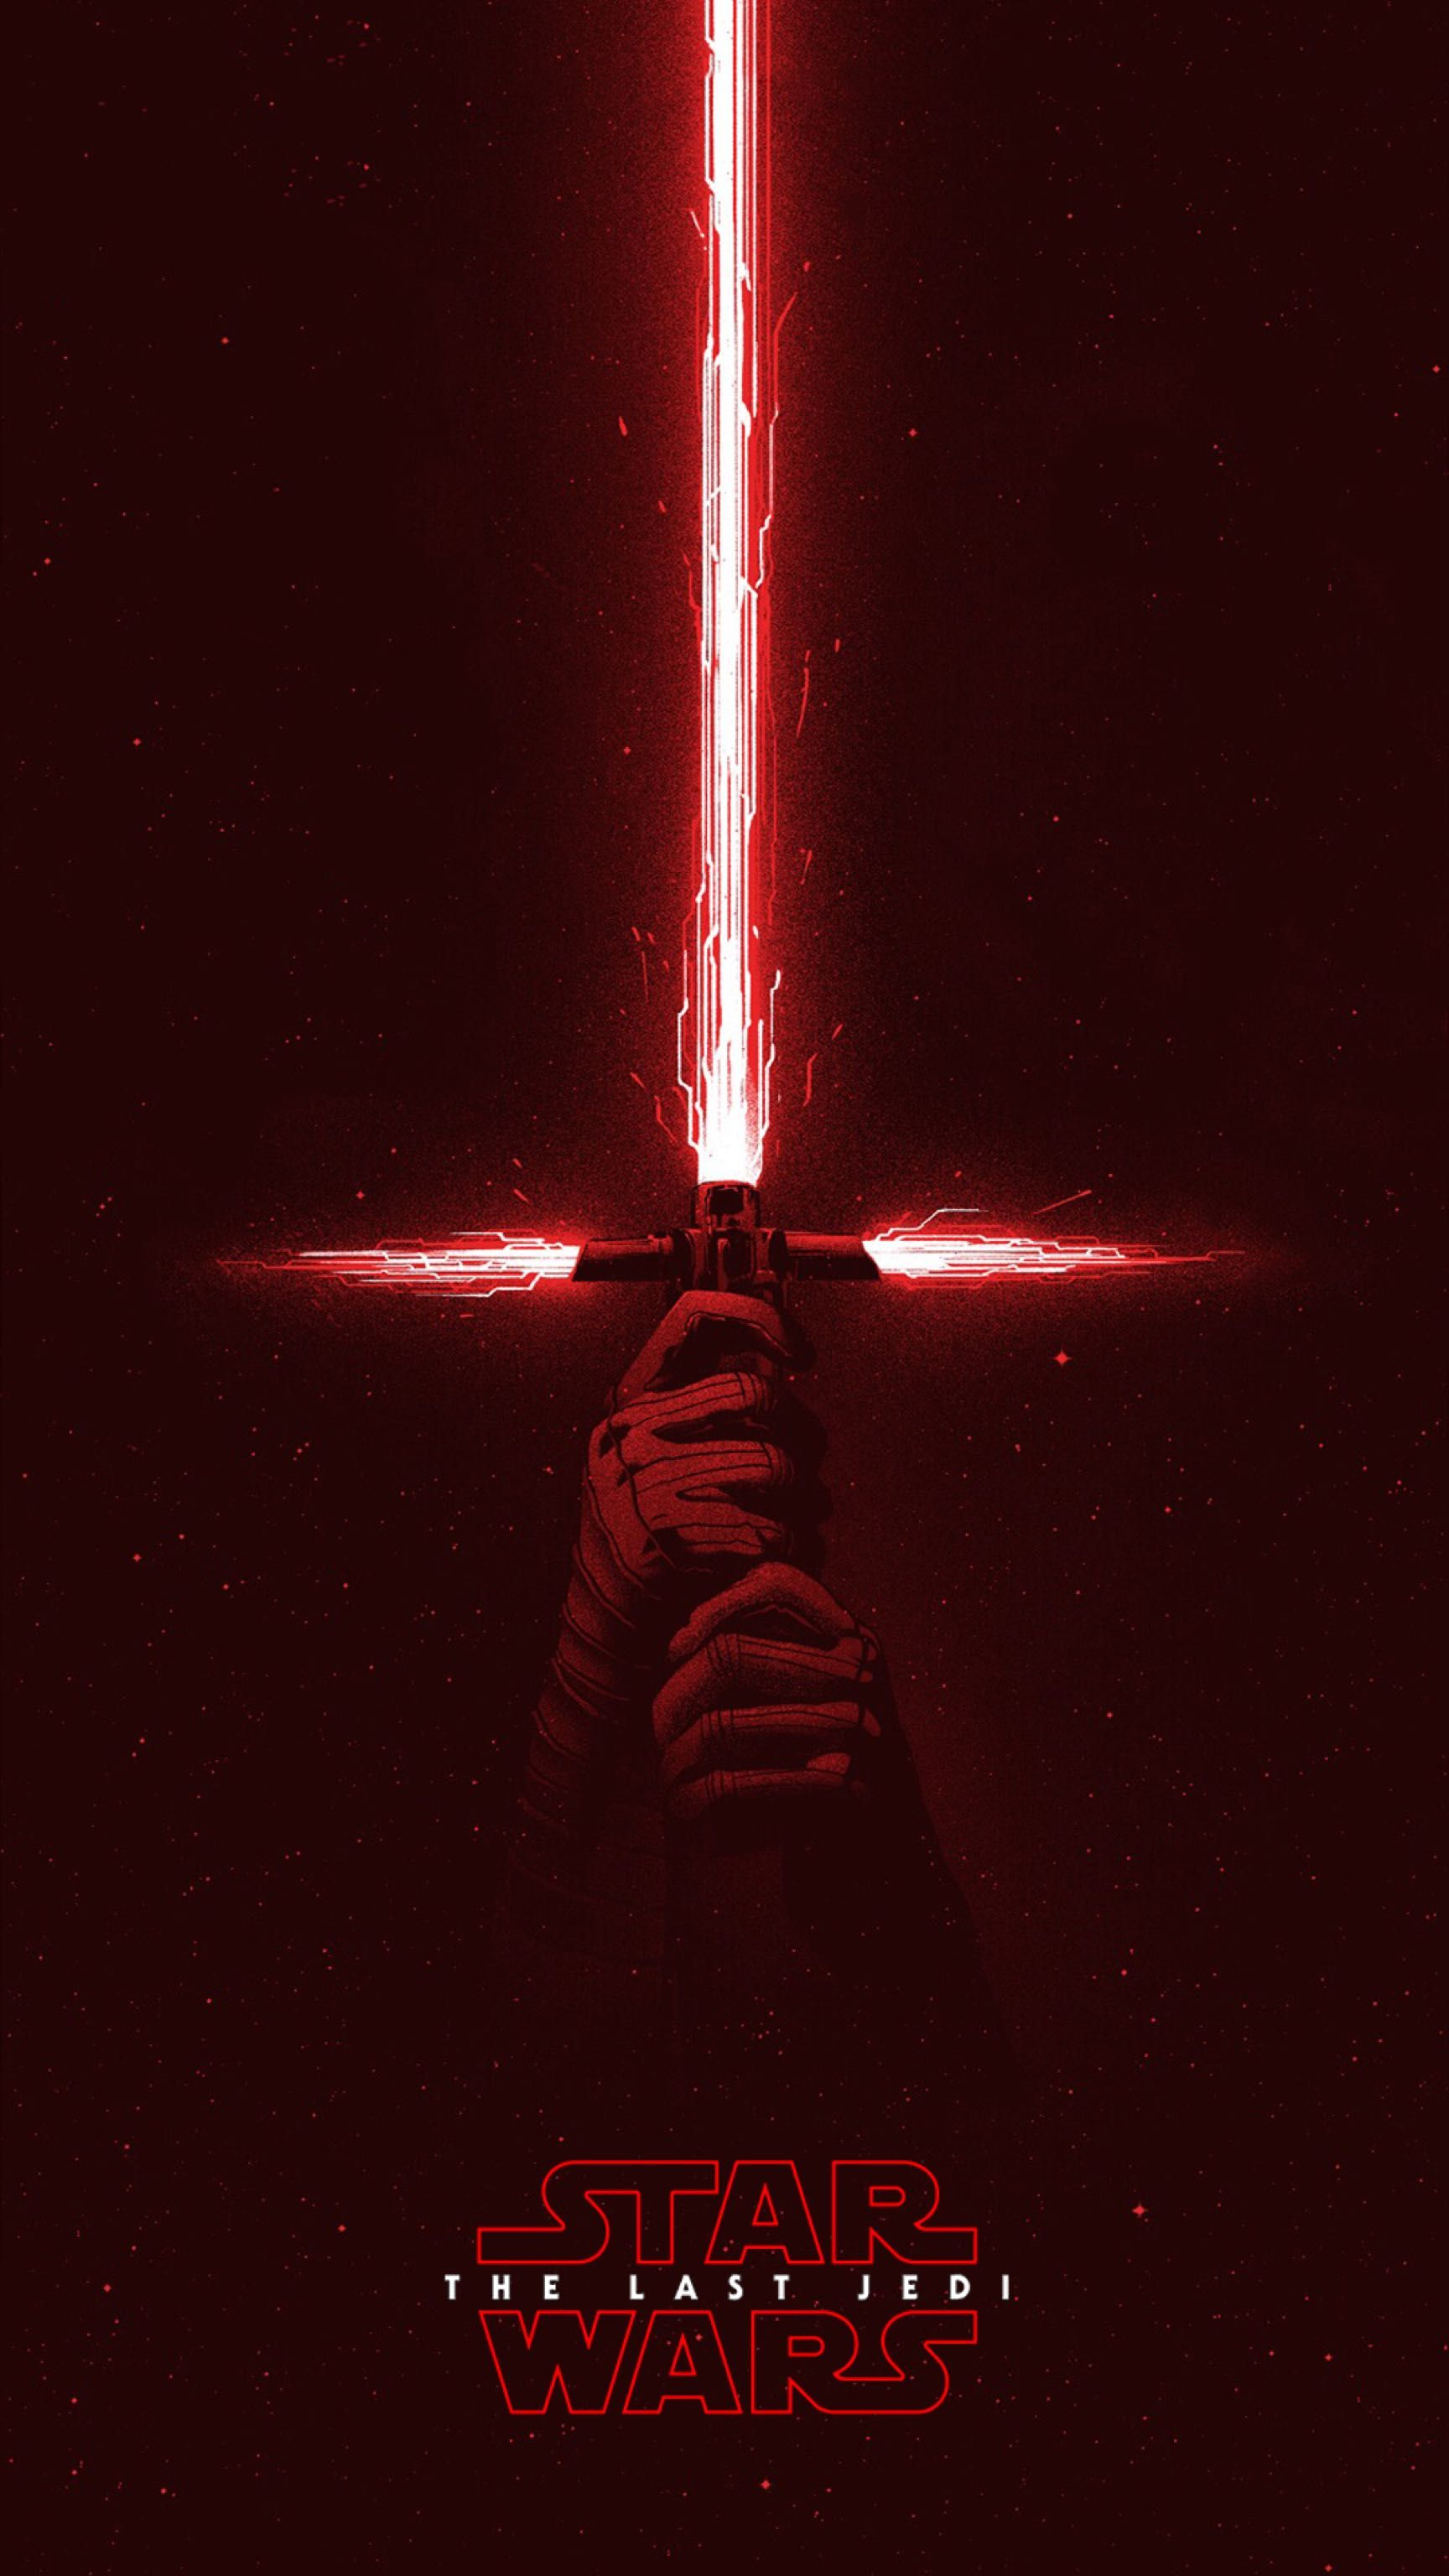 The Last Jedi Kylo Ren Star Wars Poster Papel De Parede Star